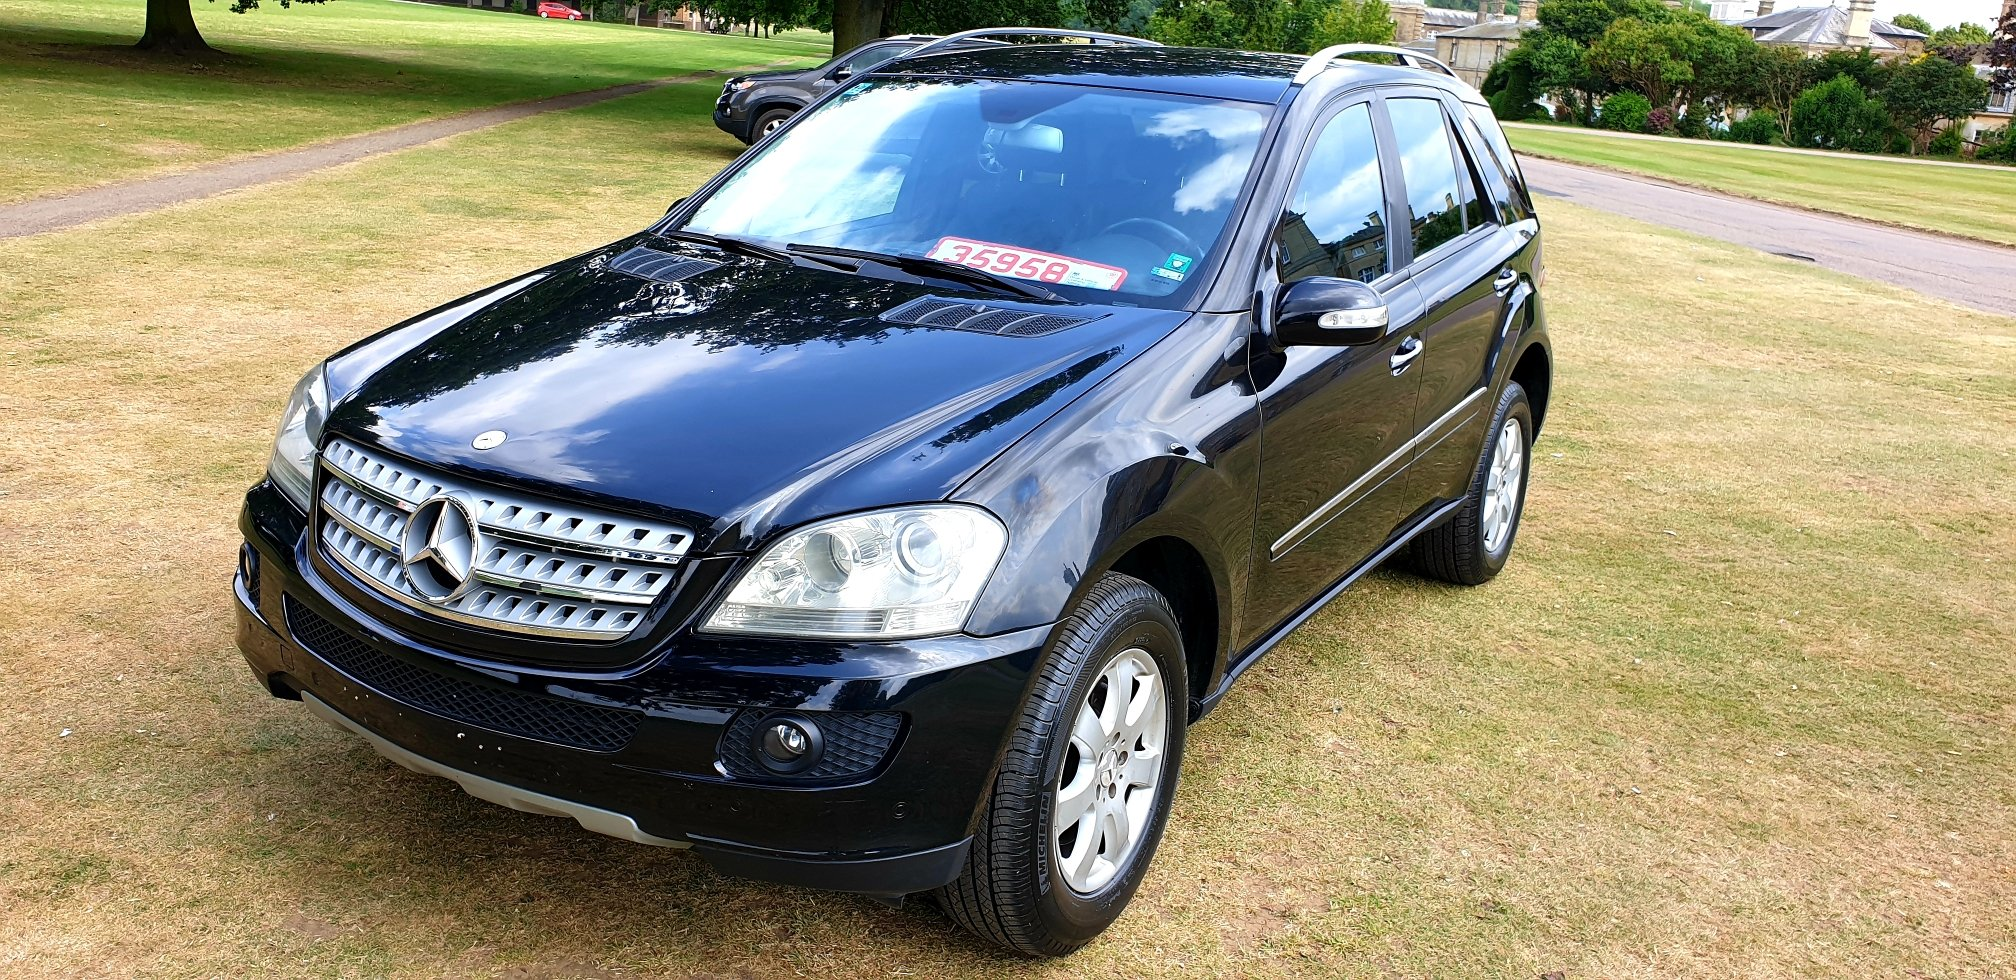 2006 LHD Mercedes-Benz ML320 3.0TD 7 G-Tronic SE, LEFT HAND DRIVE For Sale (picture 2 of 6)